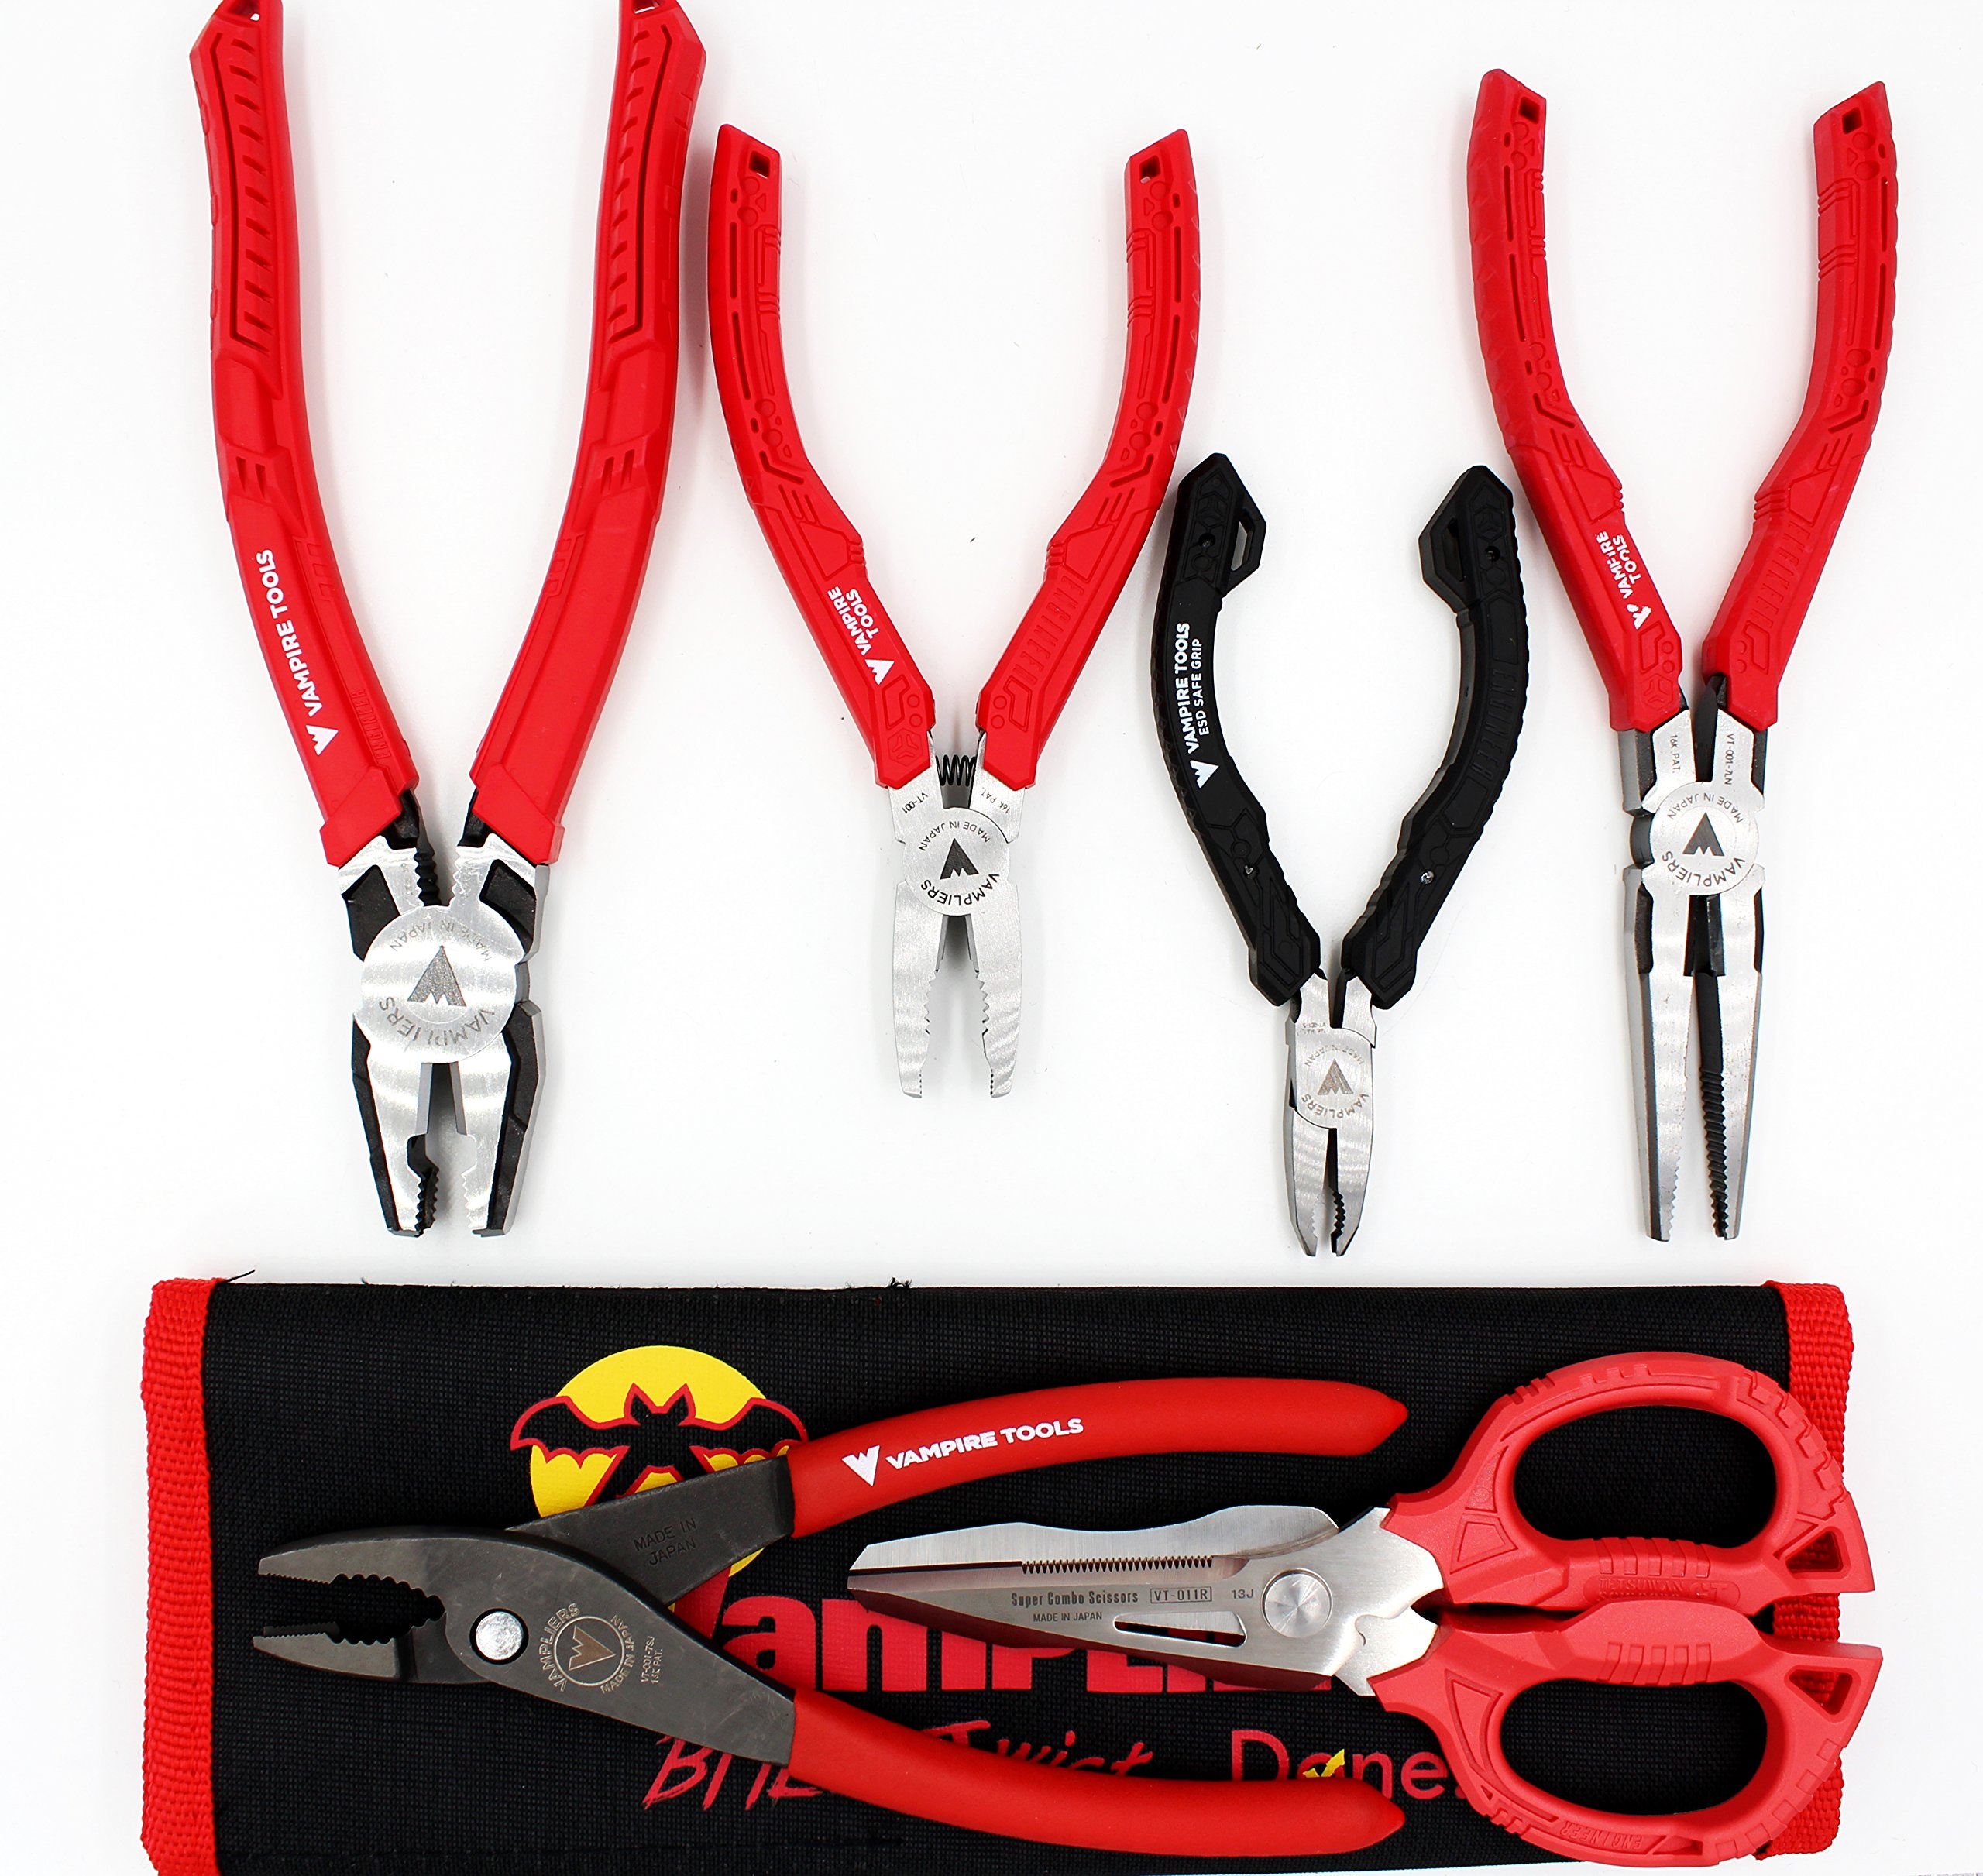 VamPLIERS. World's Best Pliers! 6-PC Set S6APC Specialty Screw Extraction Pliers. Extract Stripped Stuck Security, Corroded, or Rusted Screws + Tool Pouch & VT CAP